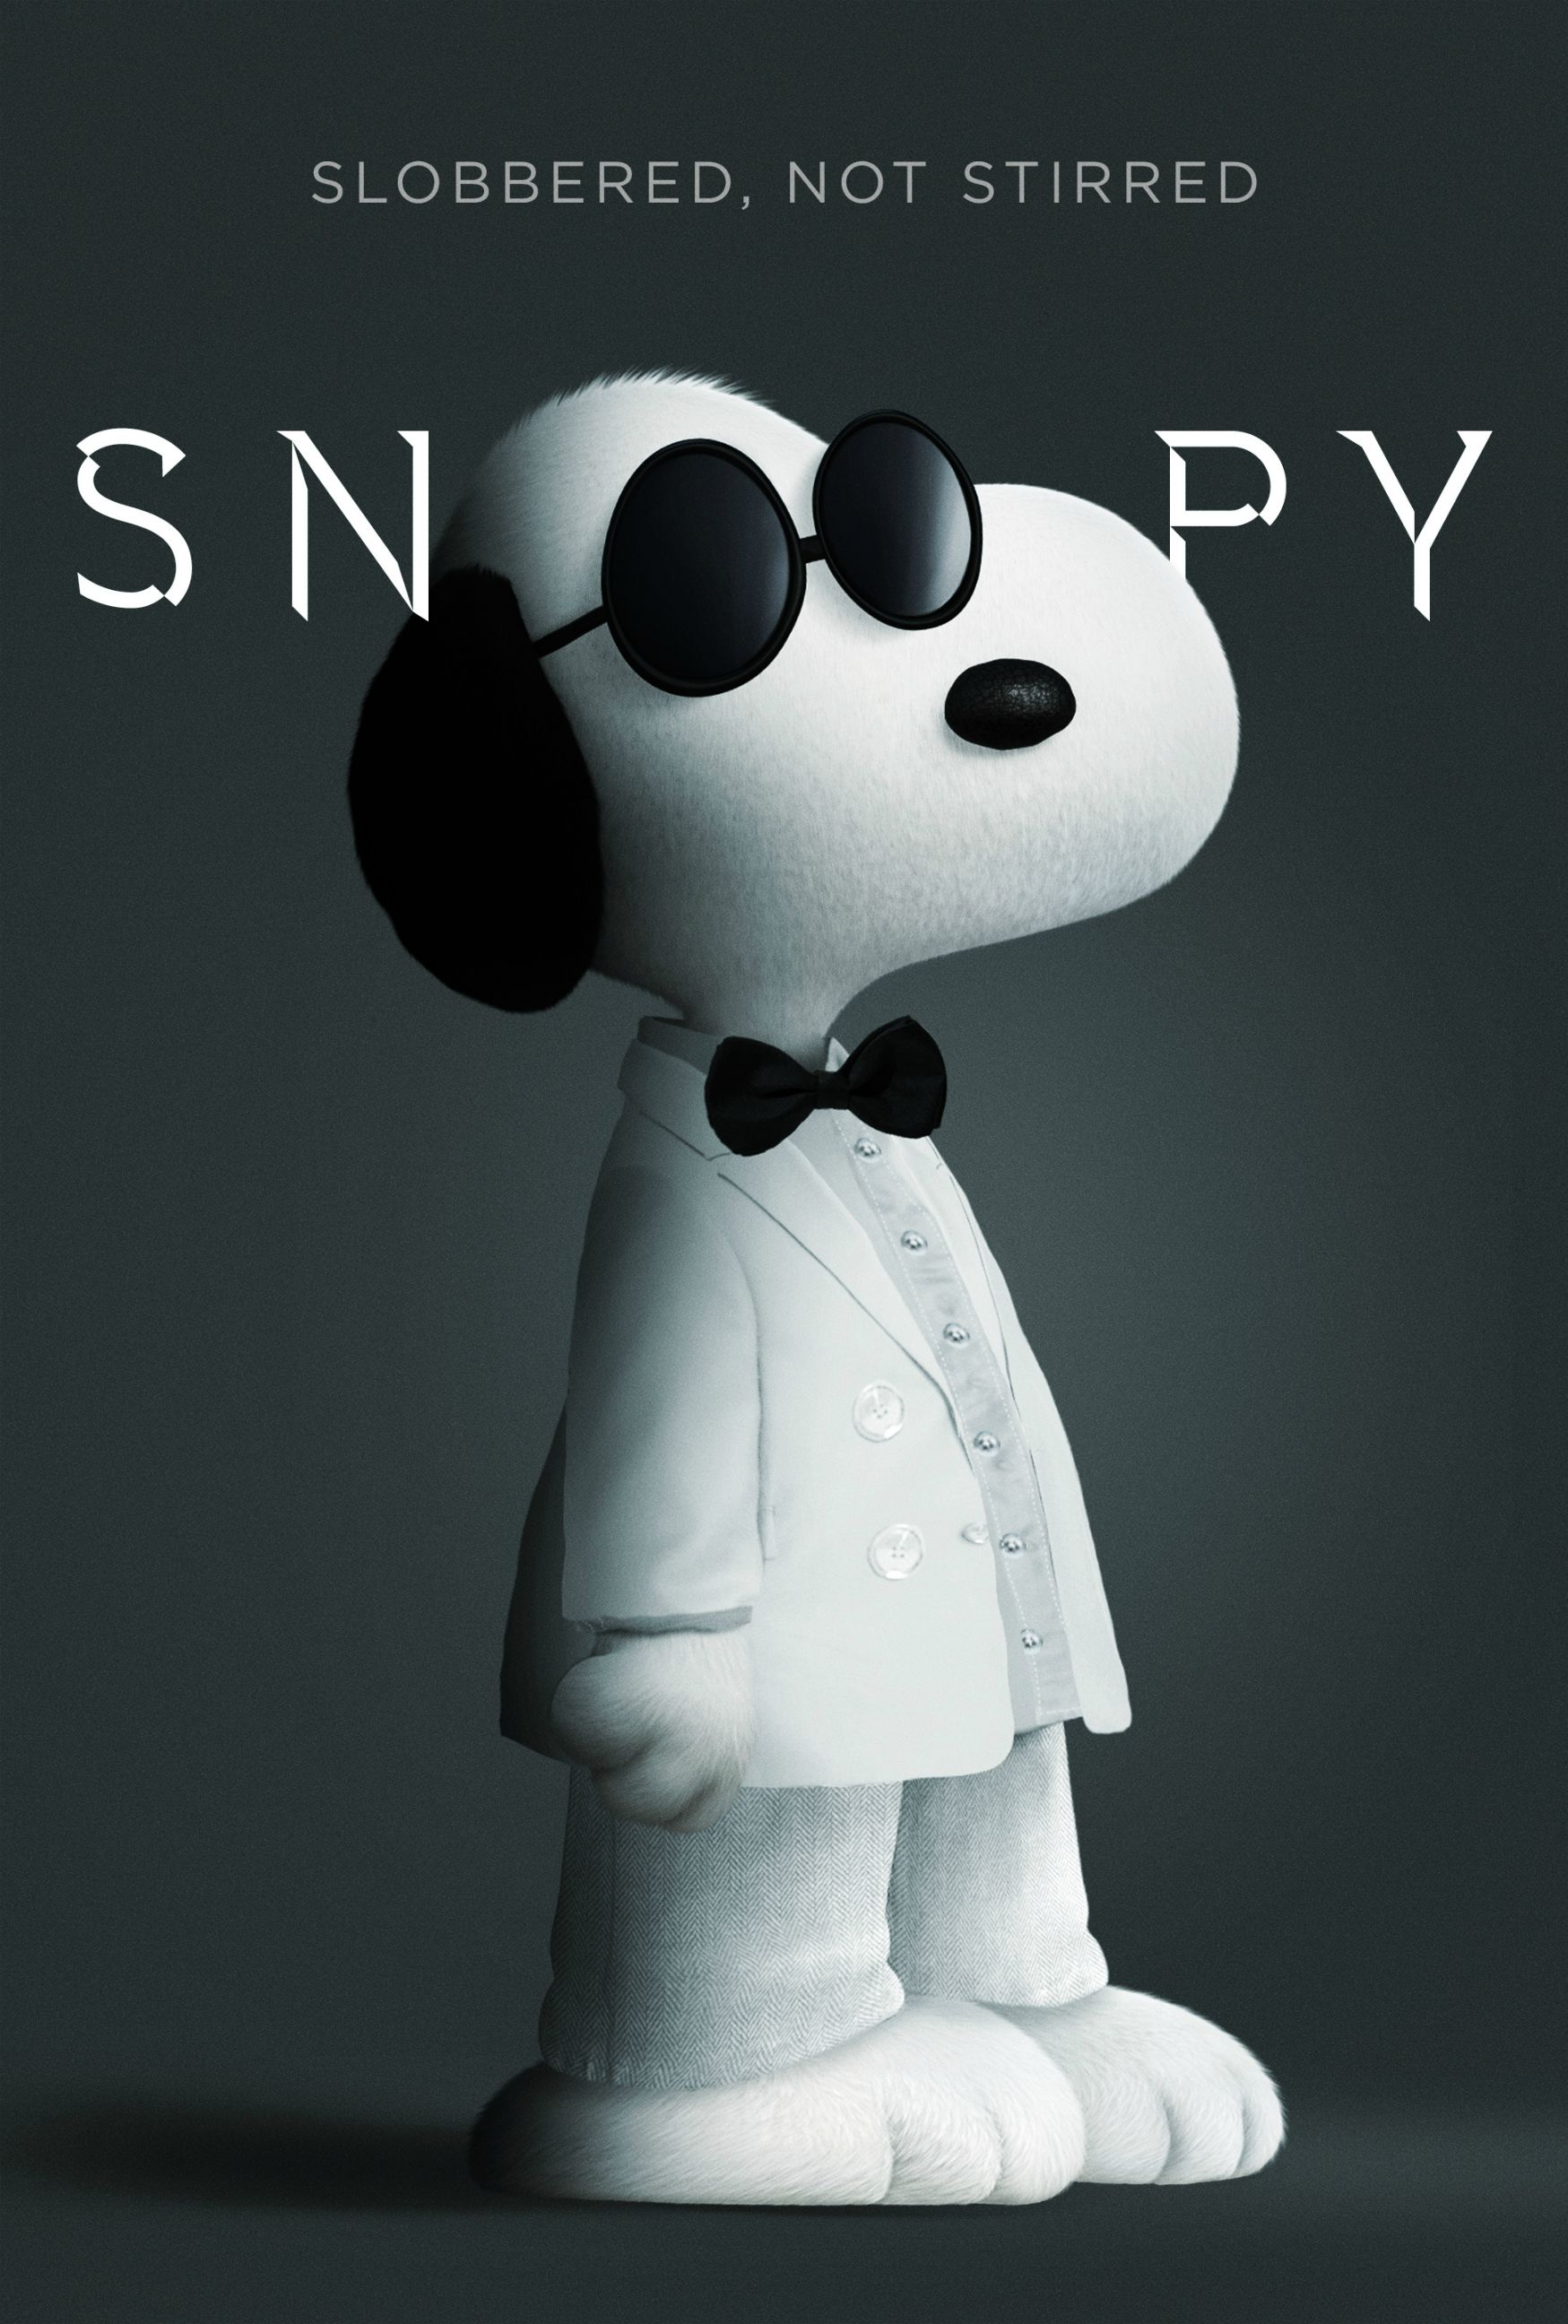 Snoopy & Friends: Snoopy versione 007 nel poster parodia dei film di James Bond